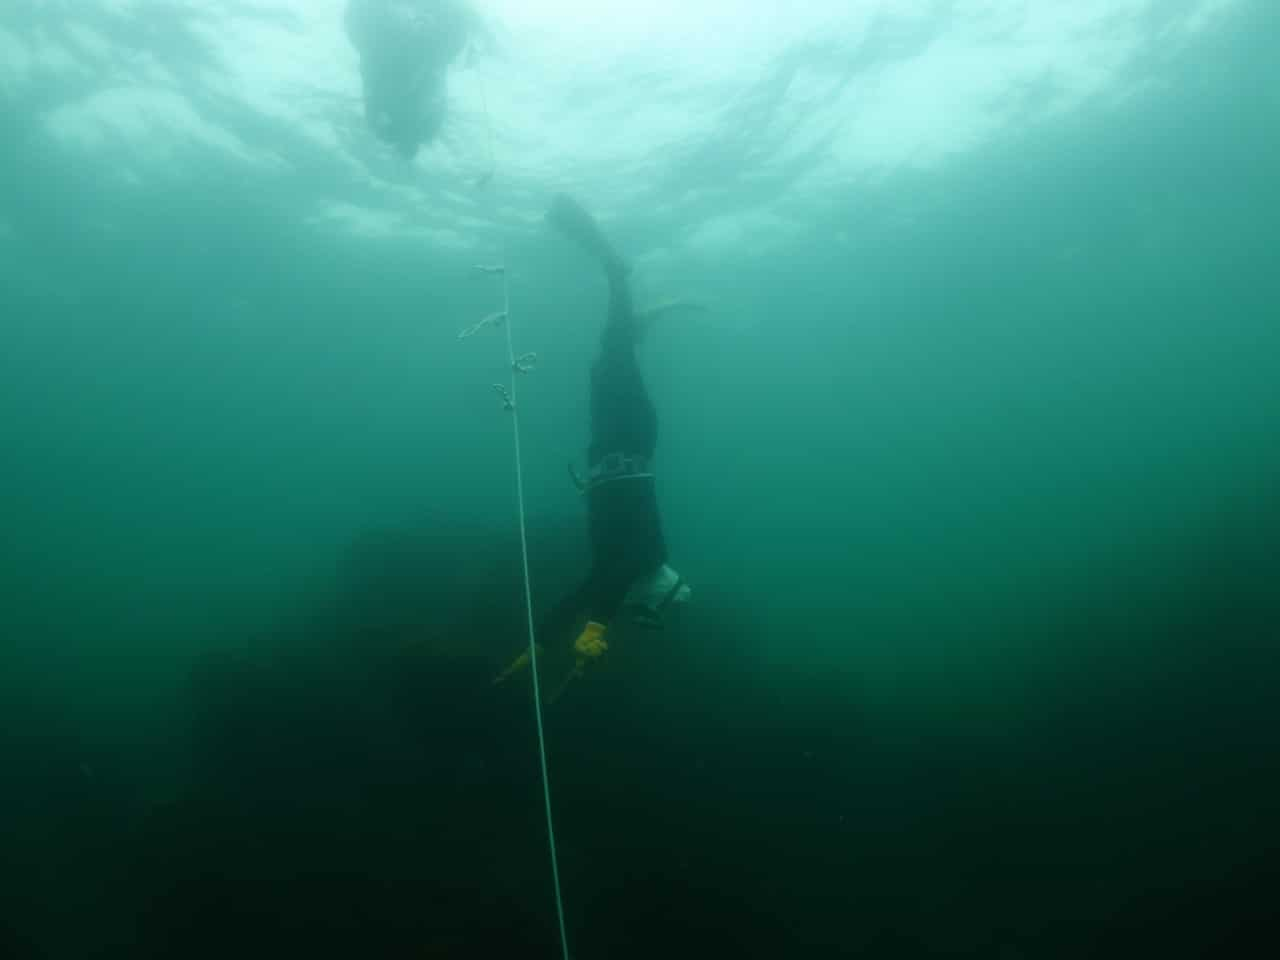 Here we have an Ama descending along her float line, a very familiar practice amongst modern freedivers.